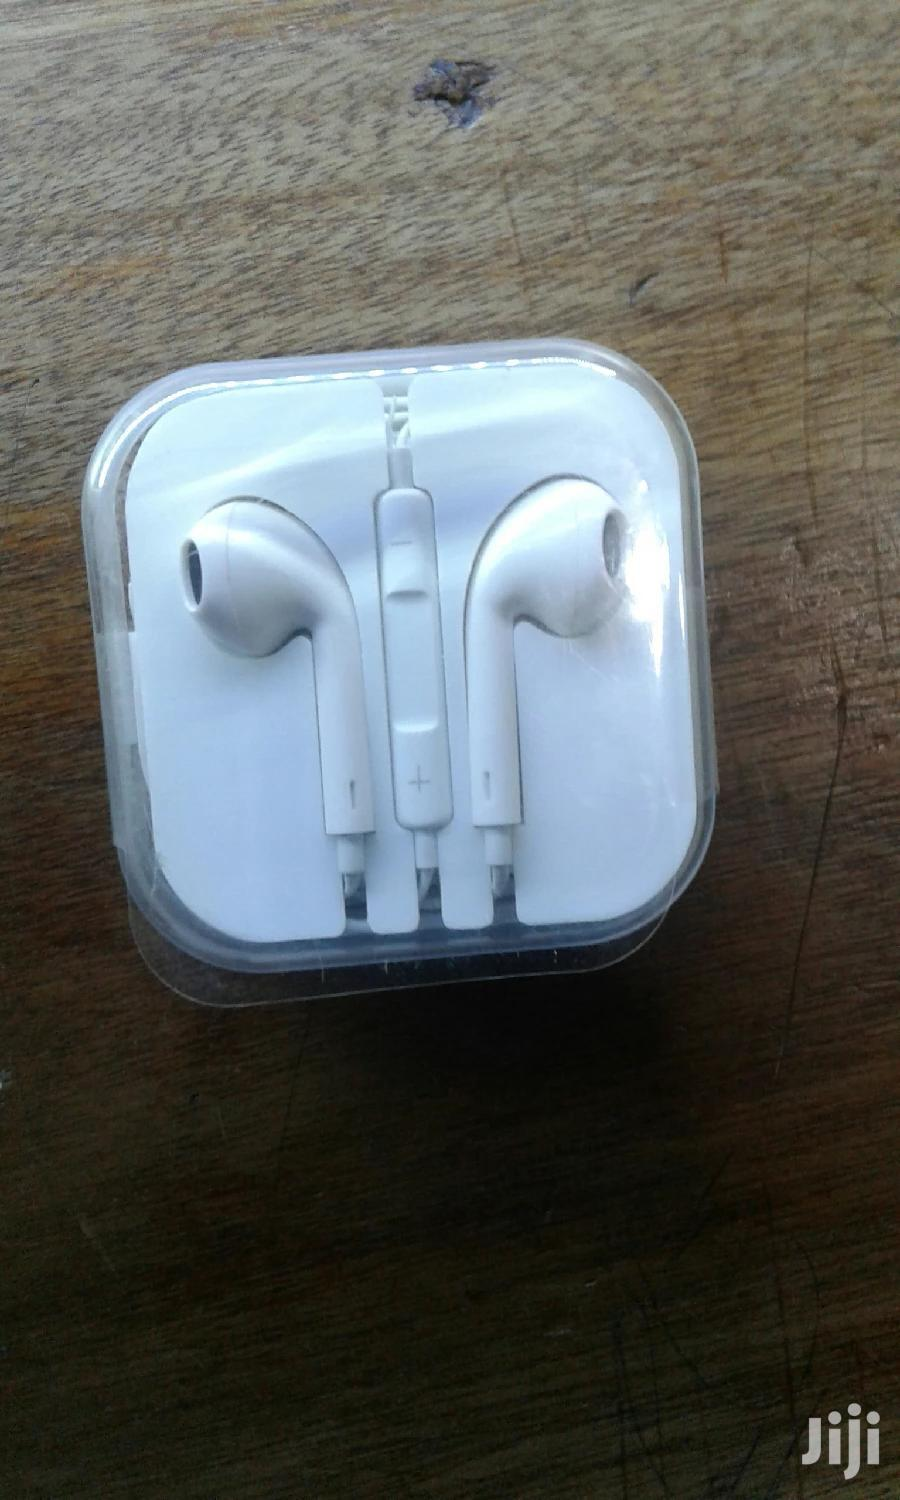 iPhone Headsets